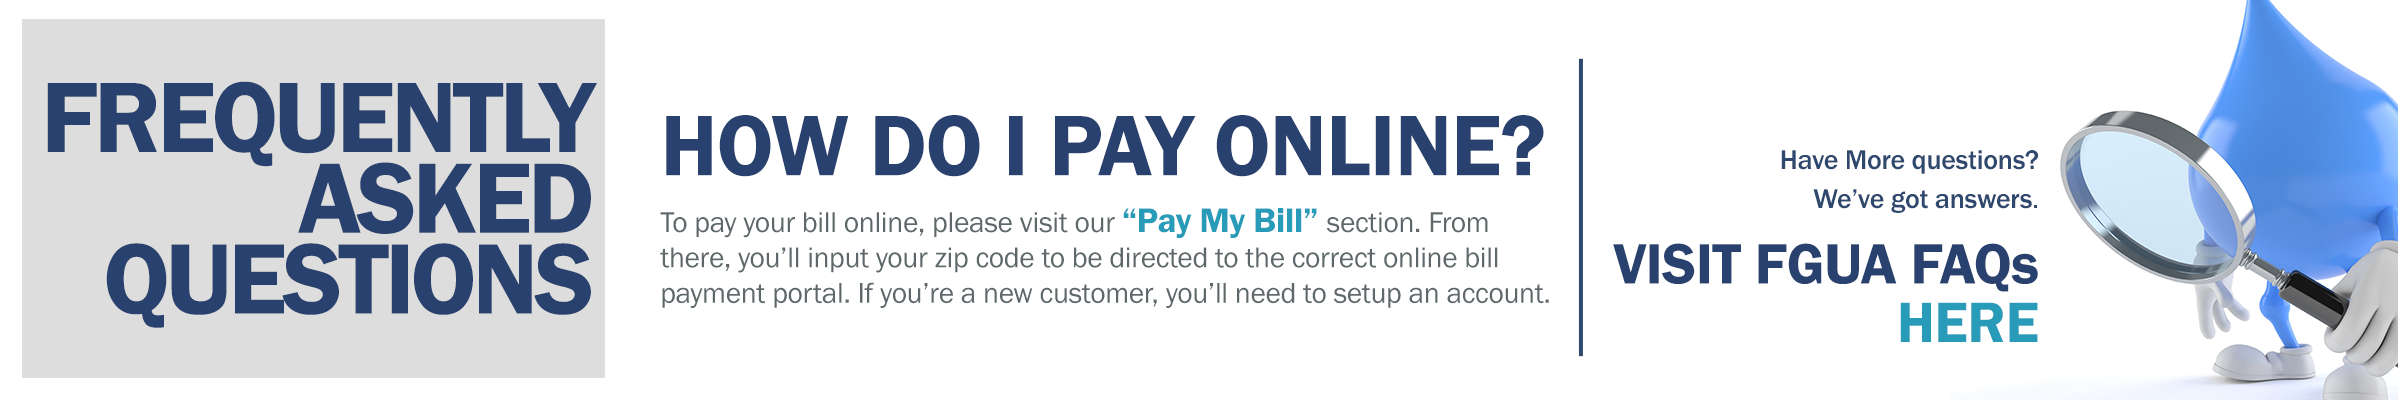 How do I pay online? To pay your bill online visit our Pay My Bill section. From there, you'll input your zip code to ber directed to the correct bill payment portal. If you're a new customer, you'll need to set up an account.